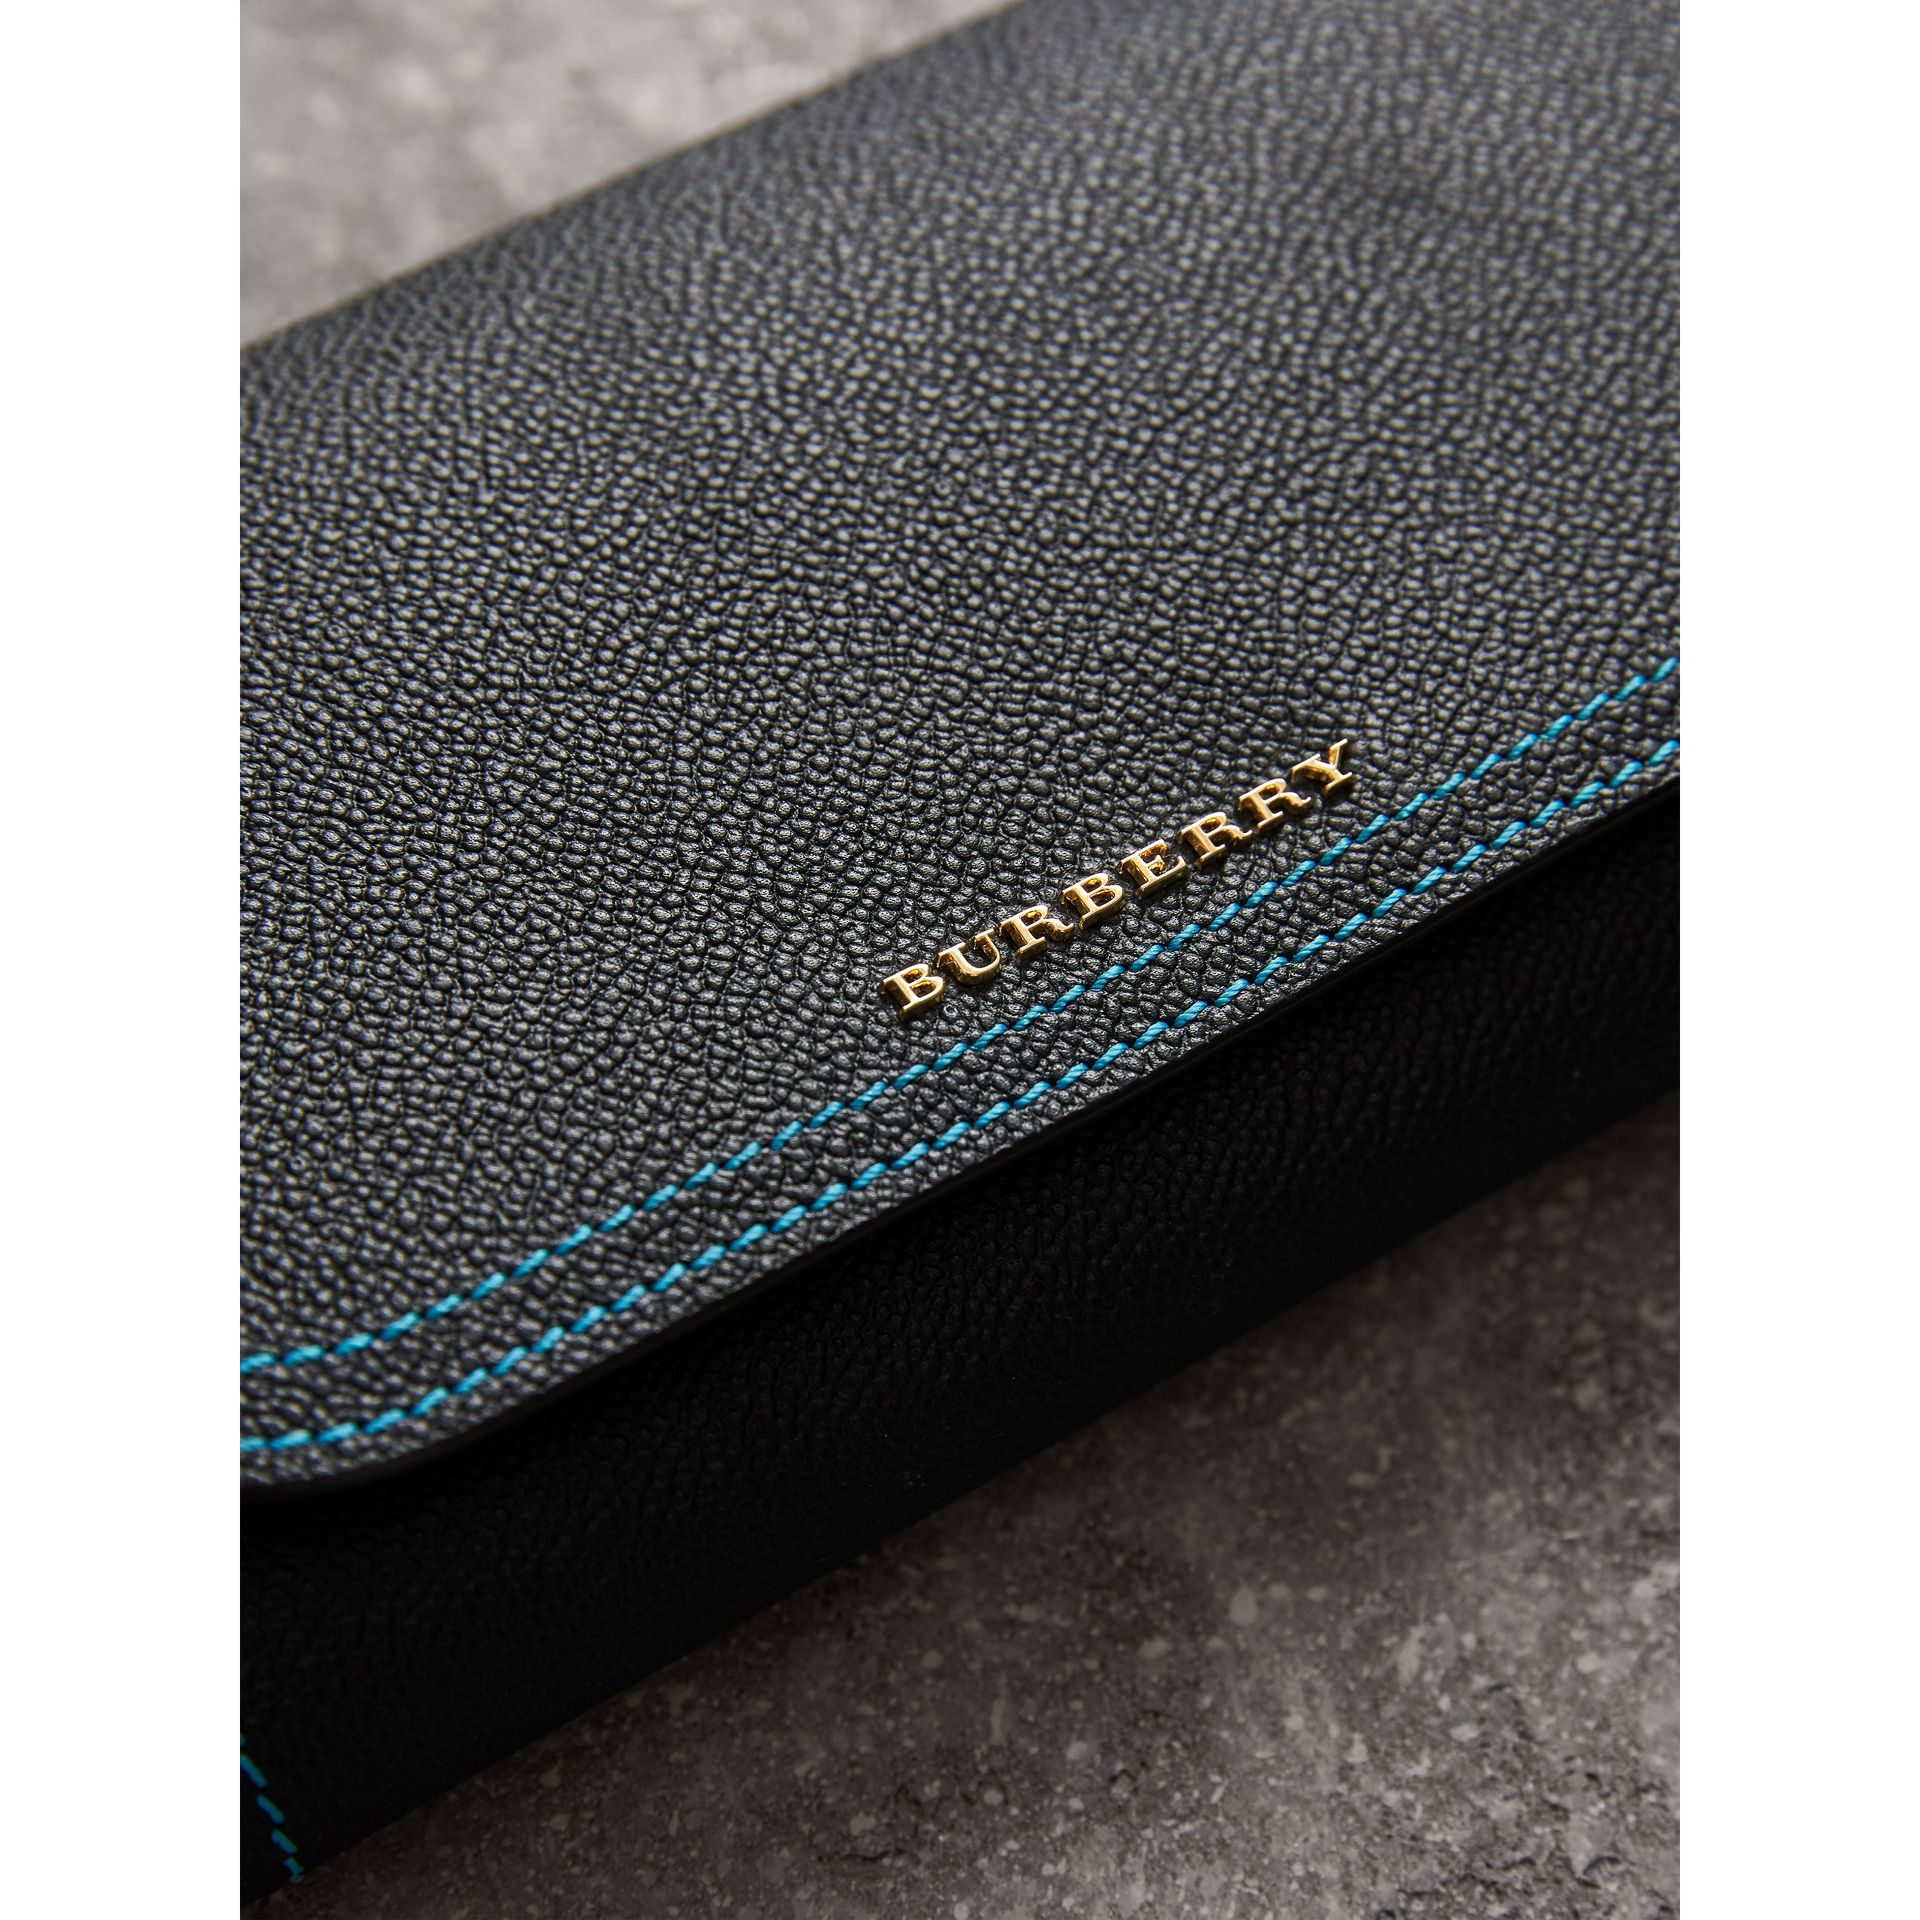 Topstitch Detail Leather Wallet with Detachable Strap in Black/multicolour - Women | Burberry United Kingdom - gallery image 2